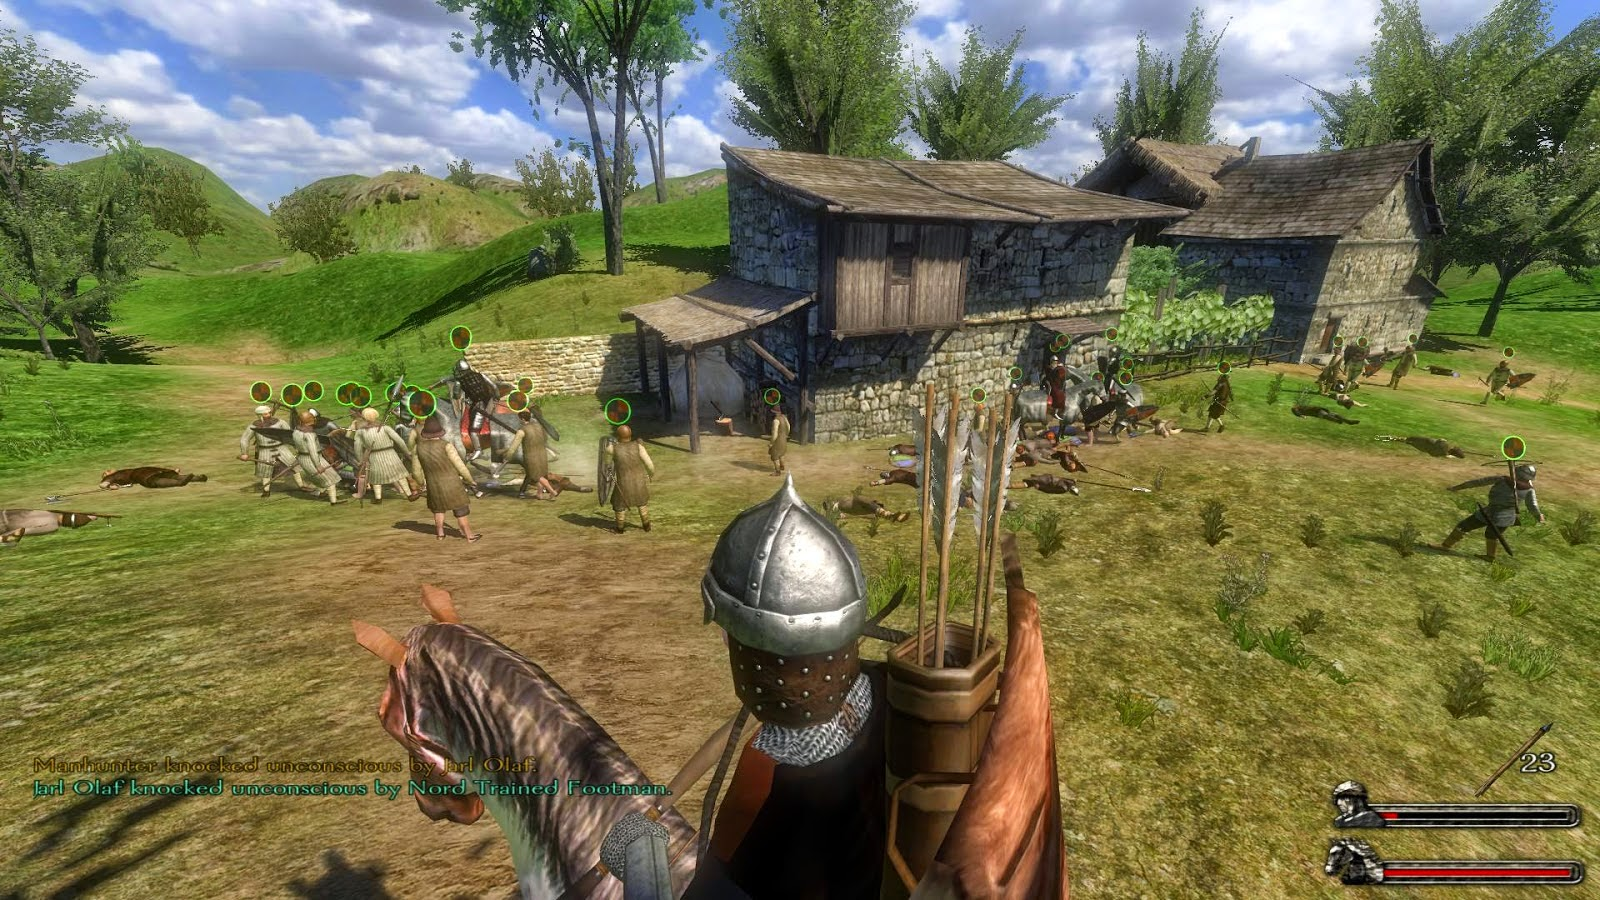 mount and blade download ocean of games